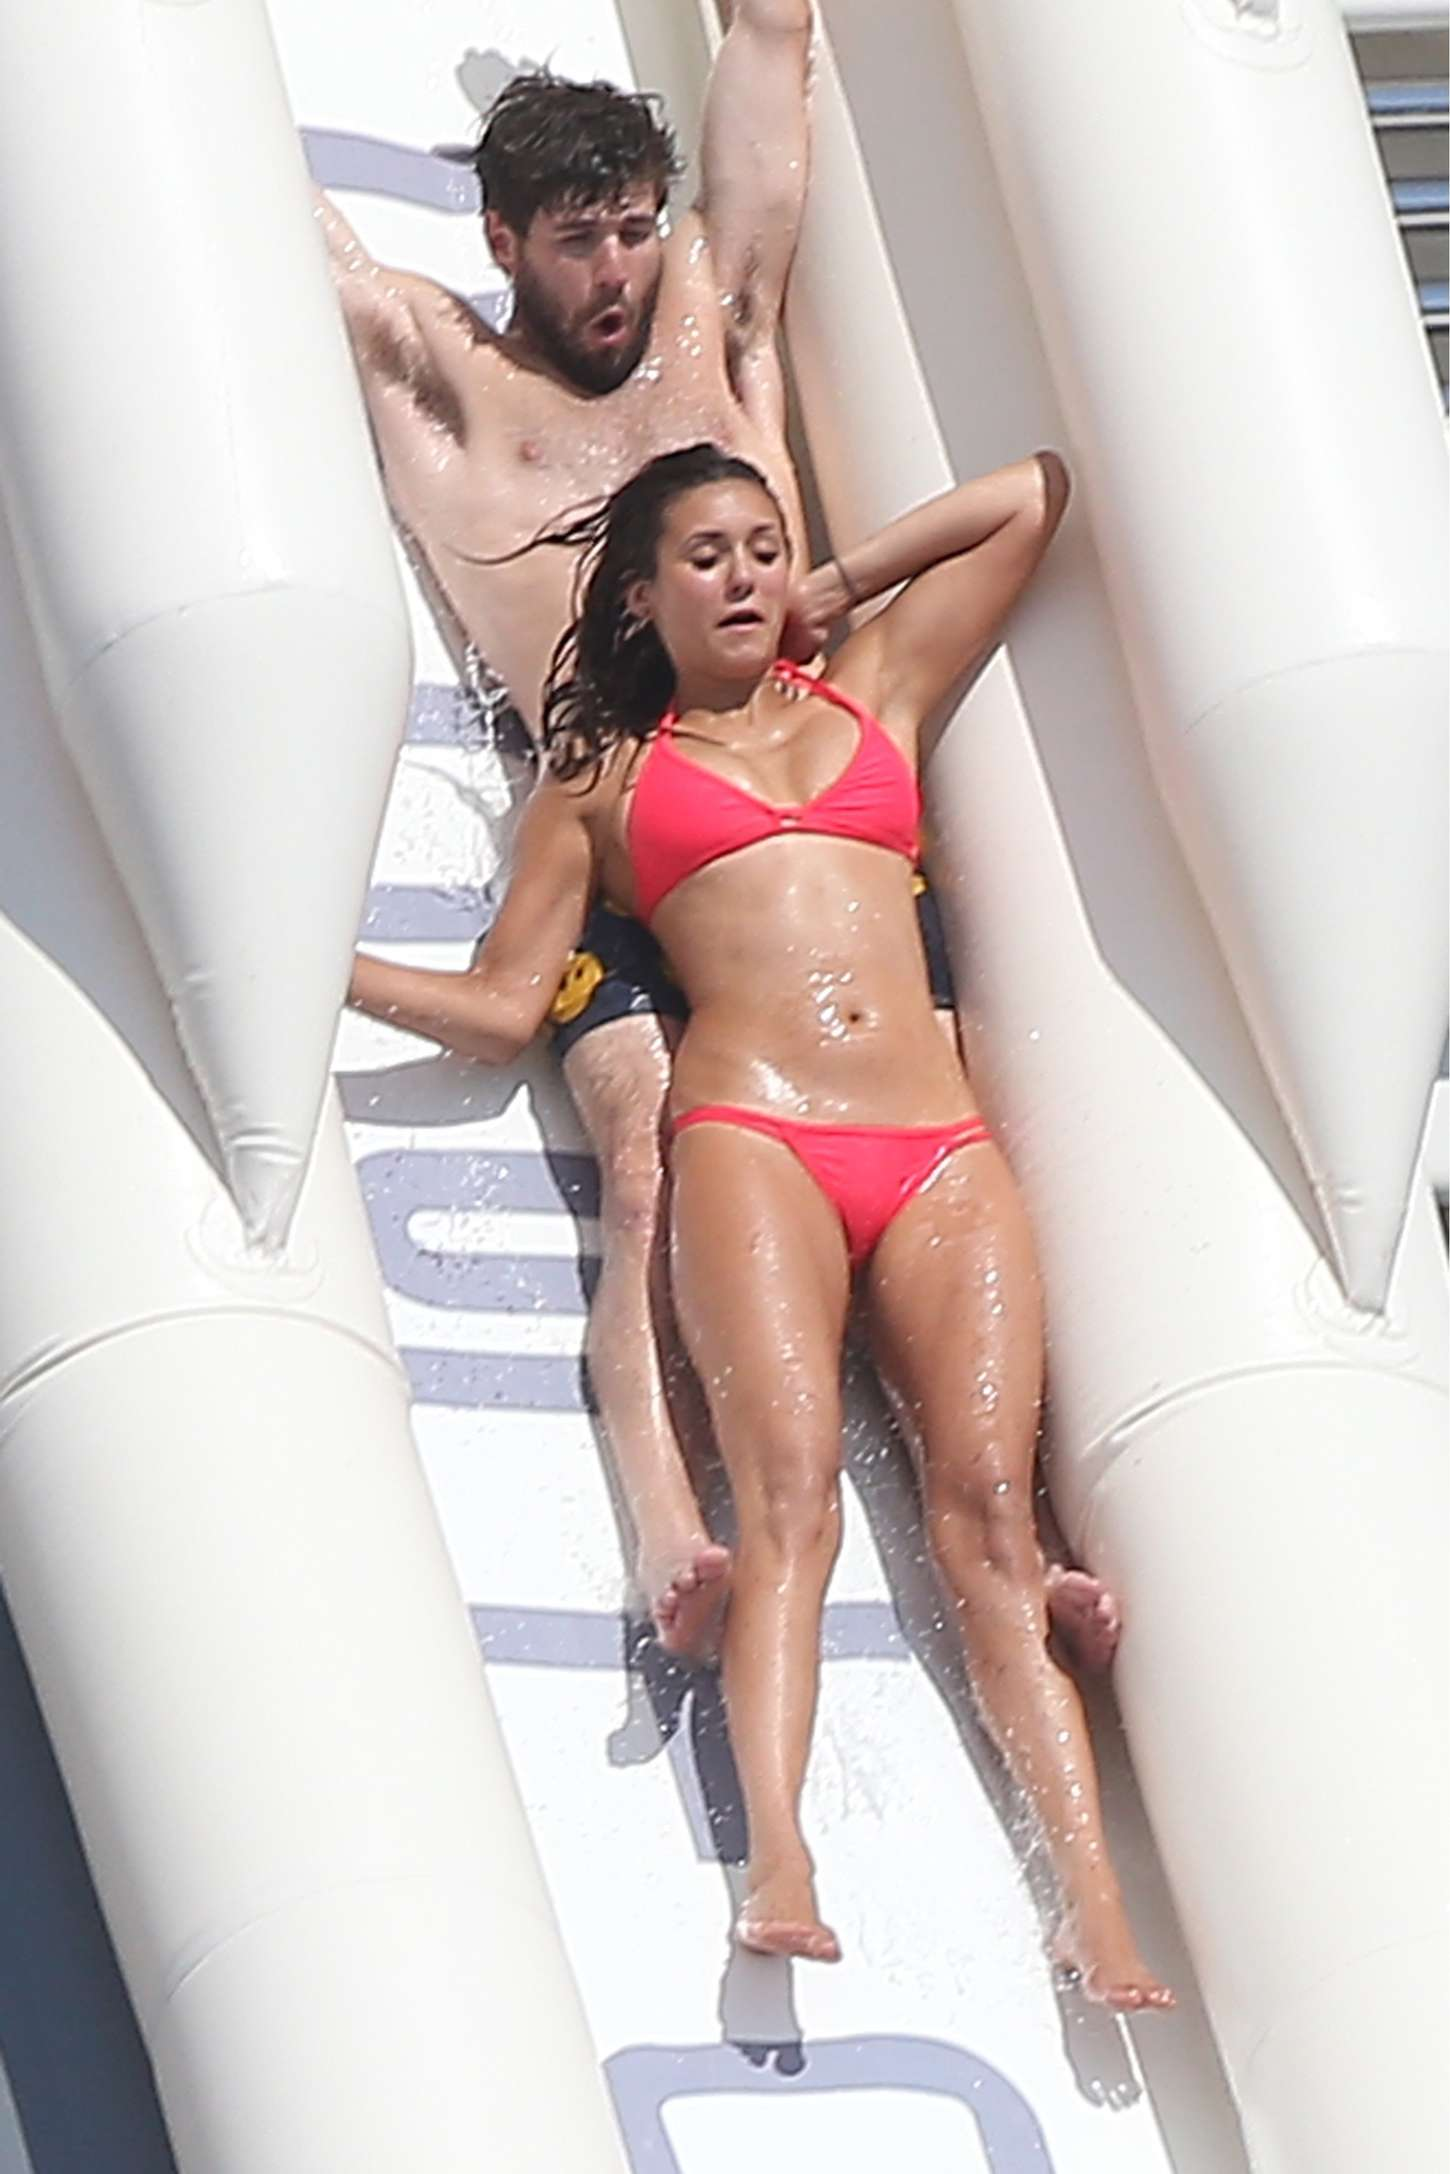 Nina Dobrev in Red Bikini Hot Personal Pics Pic 15 of 35